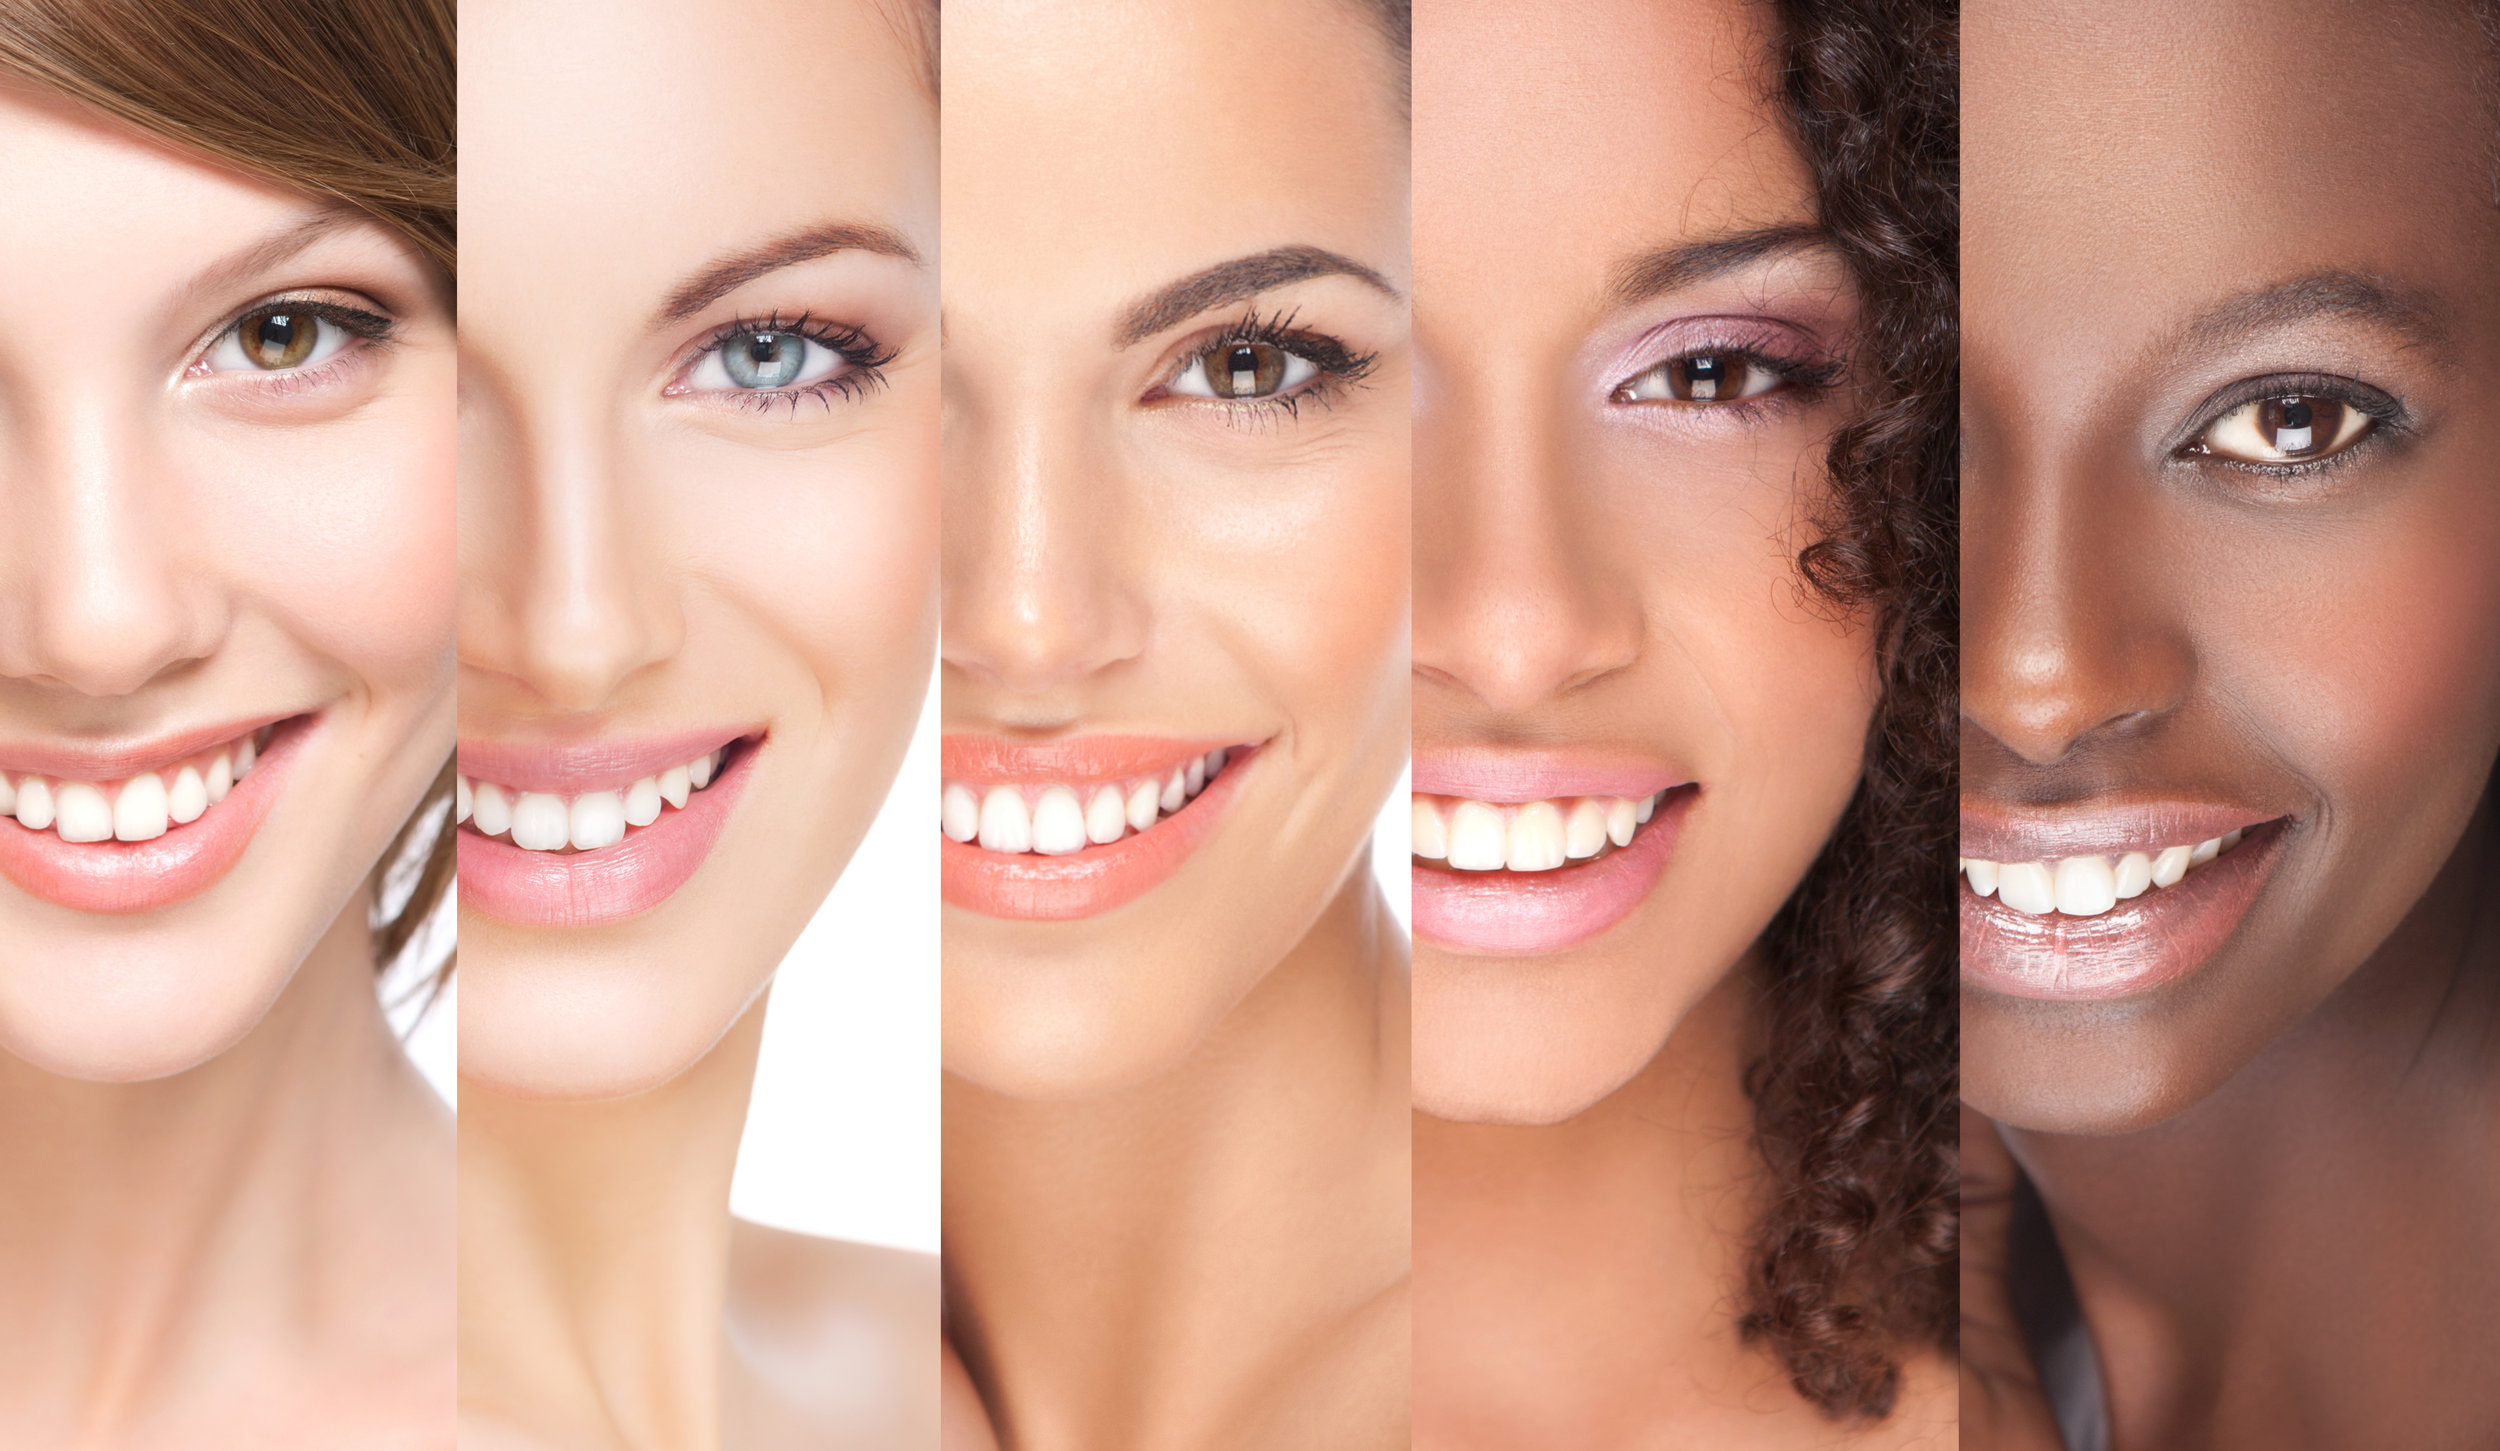 Skincare Services - DermaSmooth Boutique your full service advanced skin care center. We will customize specific treatments to fulfill your body's needs. We strive for aggressive results from Anti-Aging Facials, Chemical Peels, Microblading, Laser Hair Removal Services for Men and Women, Microneedling, Hydra-Facials, Ultrasonic Facials and Waxing Services. At DermaSmooth Boutique during your skin consultation we will suggest the best plan with its options to fit your needs.More Skincare Services